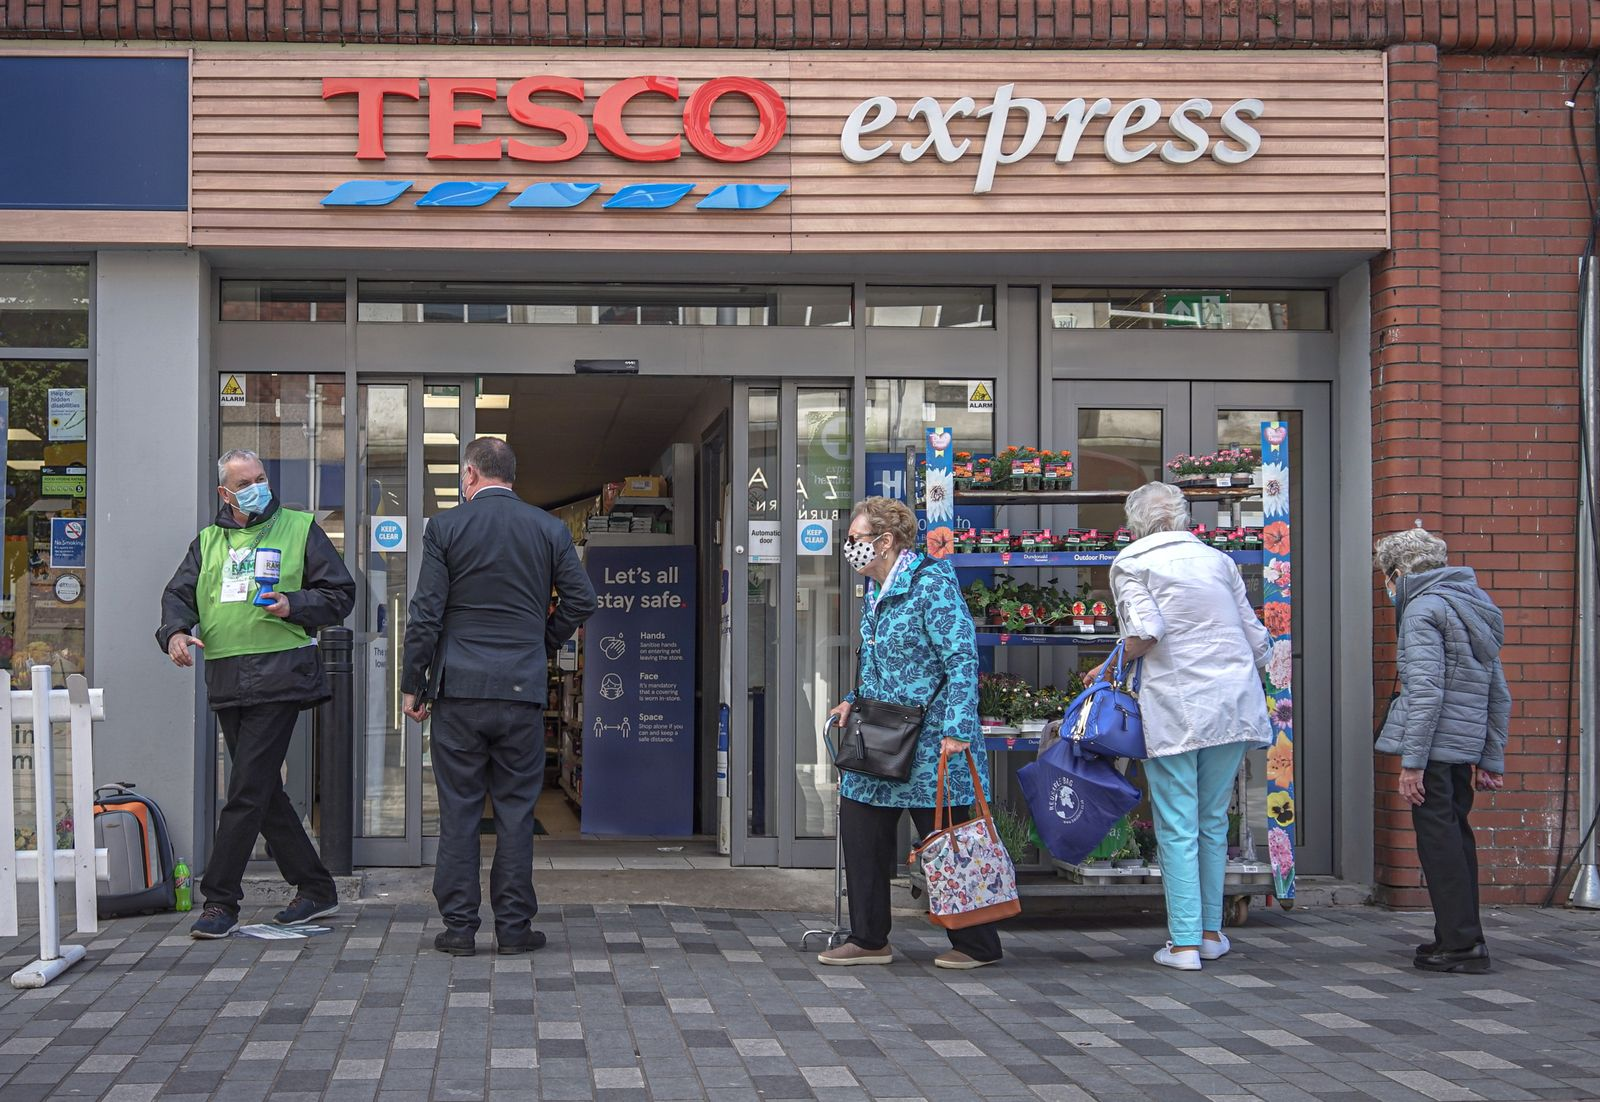 Customers enter Tesco Express on Bow St